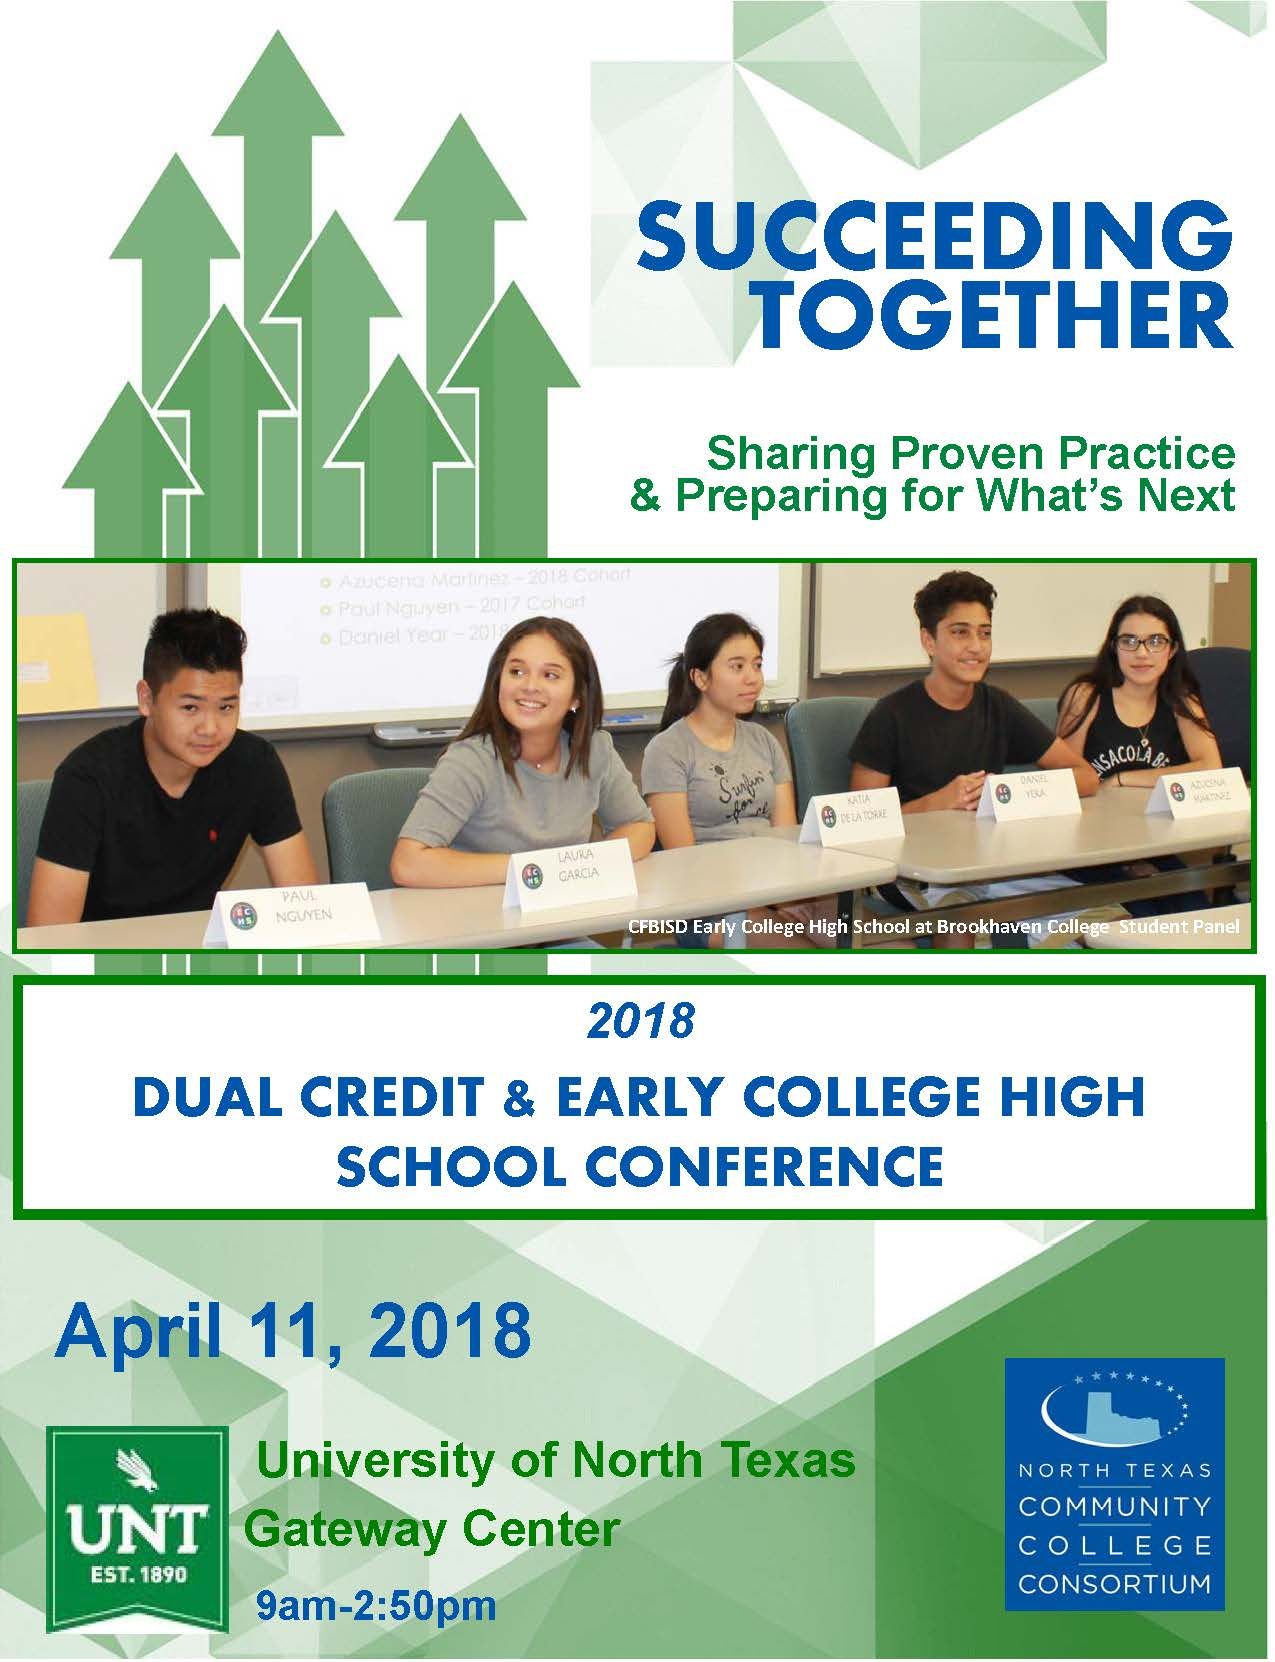 2018 Dual Credit ECHS Conference Program Cover